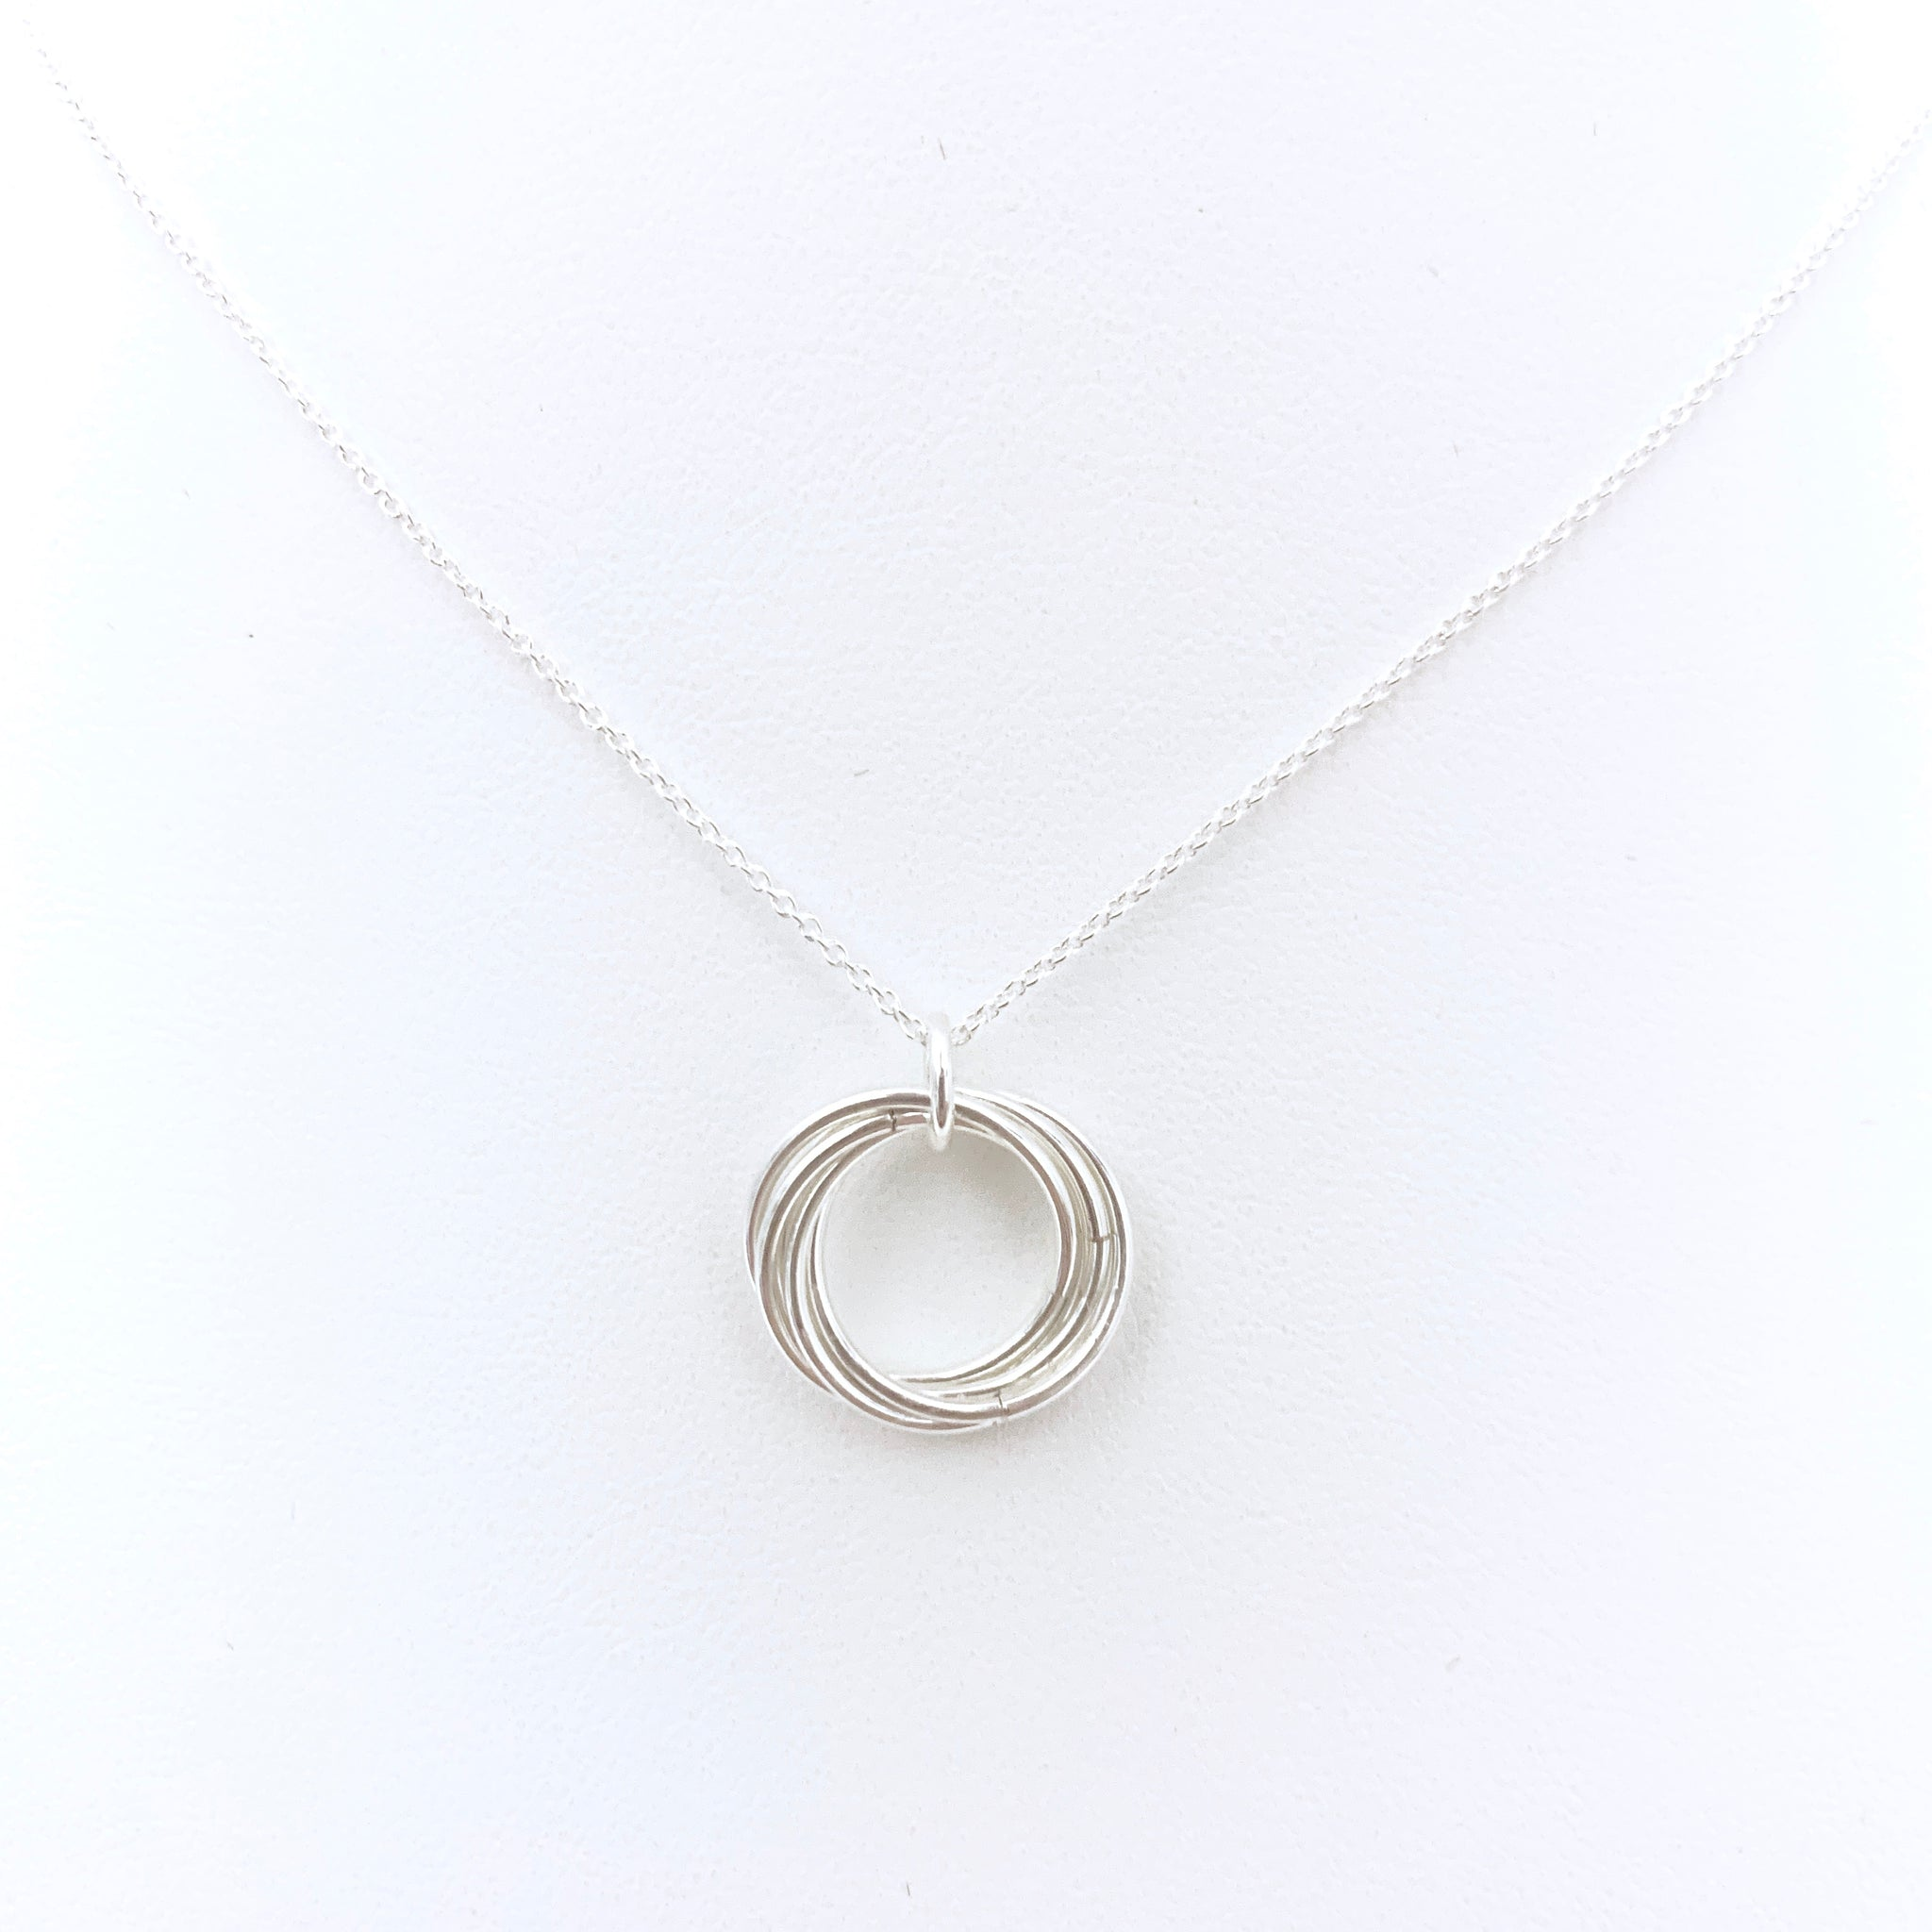 'Alexis' Silver pendant necklace